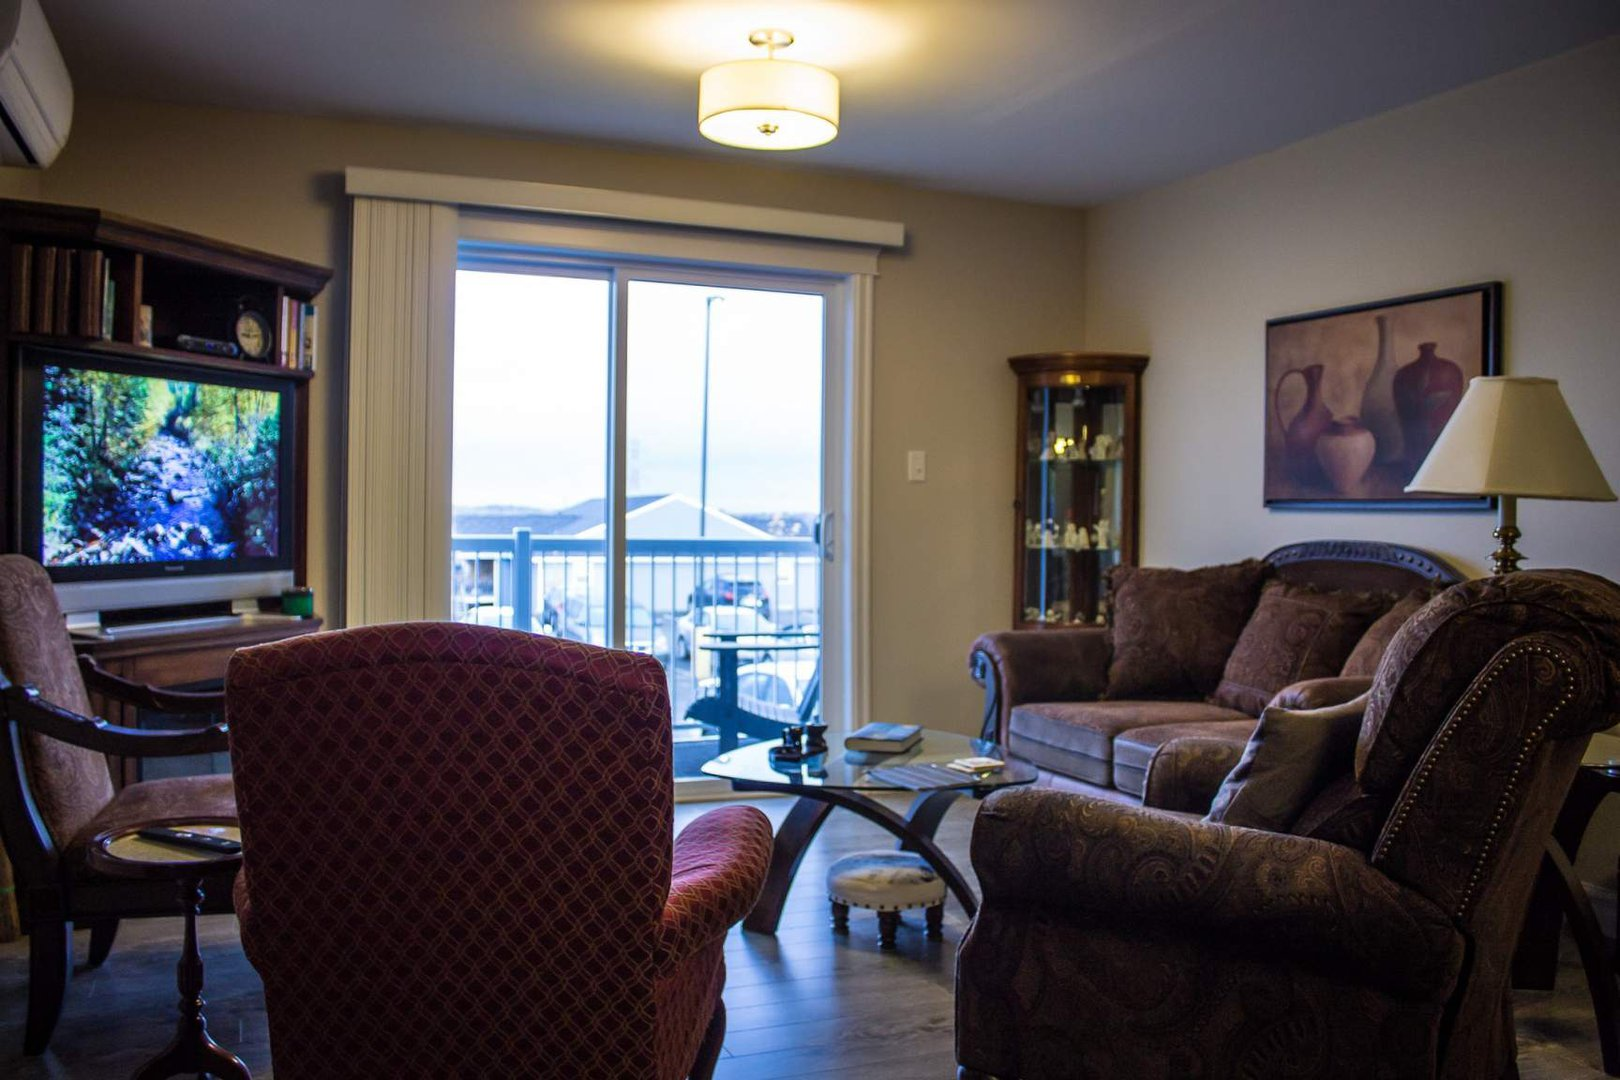 Mid-Rise-Apartment for rent at 747 Coverdale Road, Moncton, NB. This is the living room with natural light and hardwood floor.